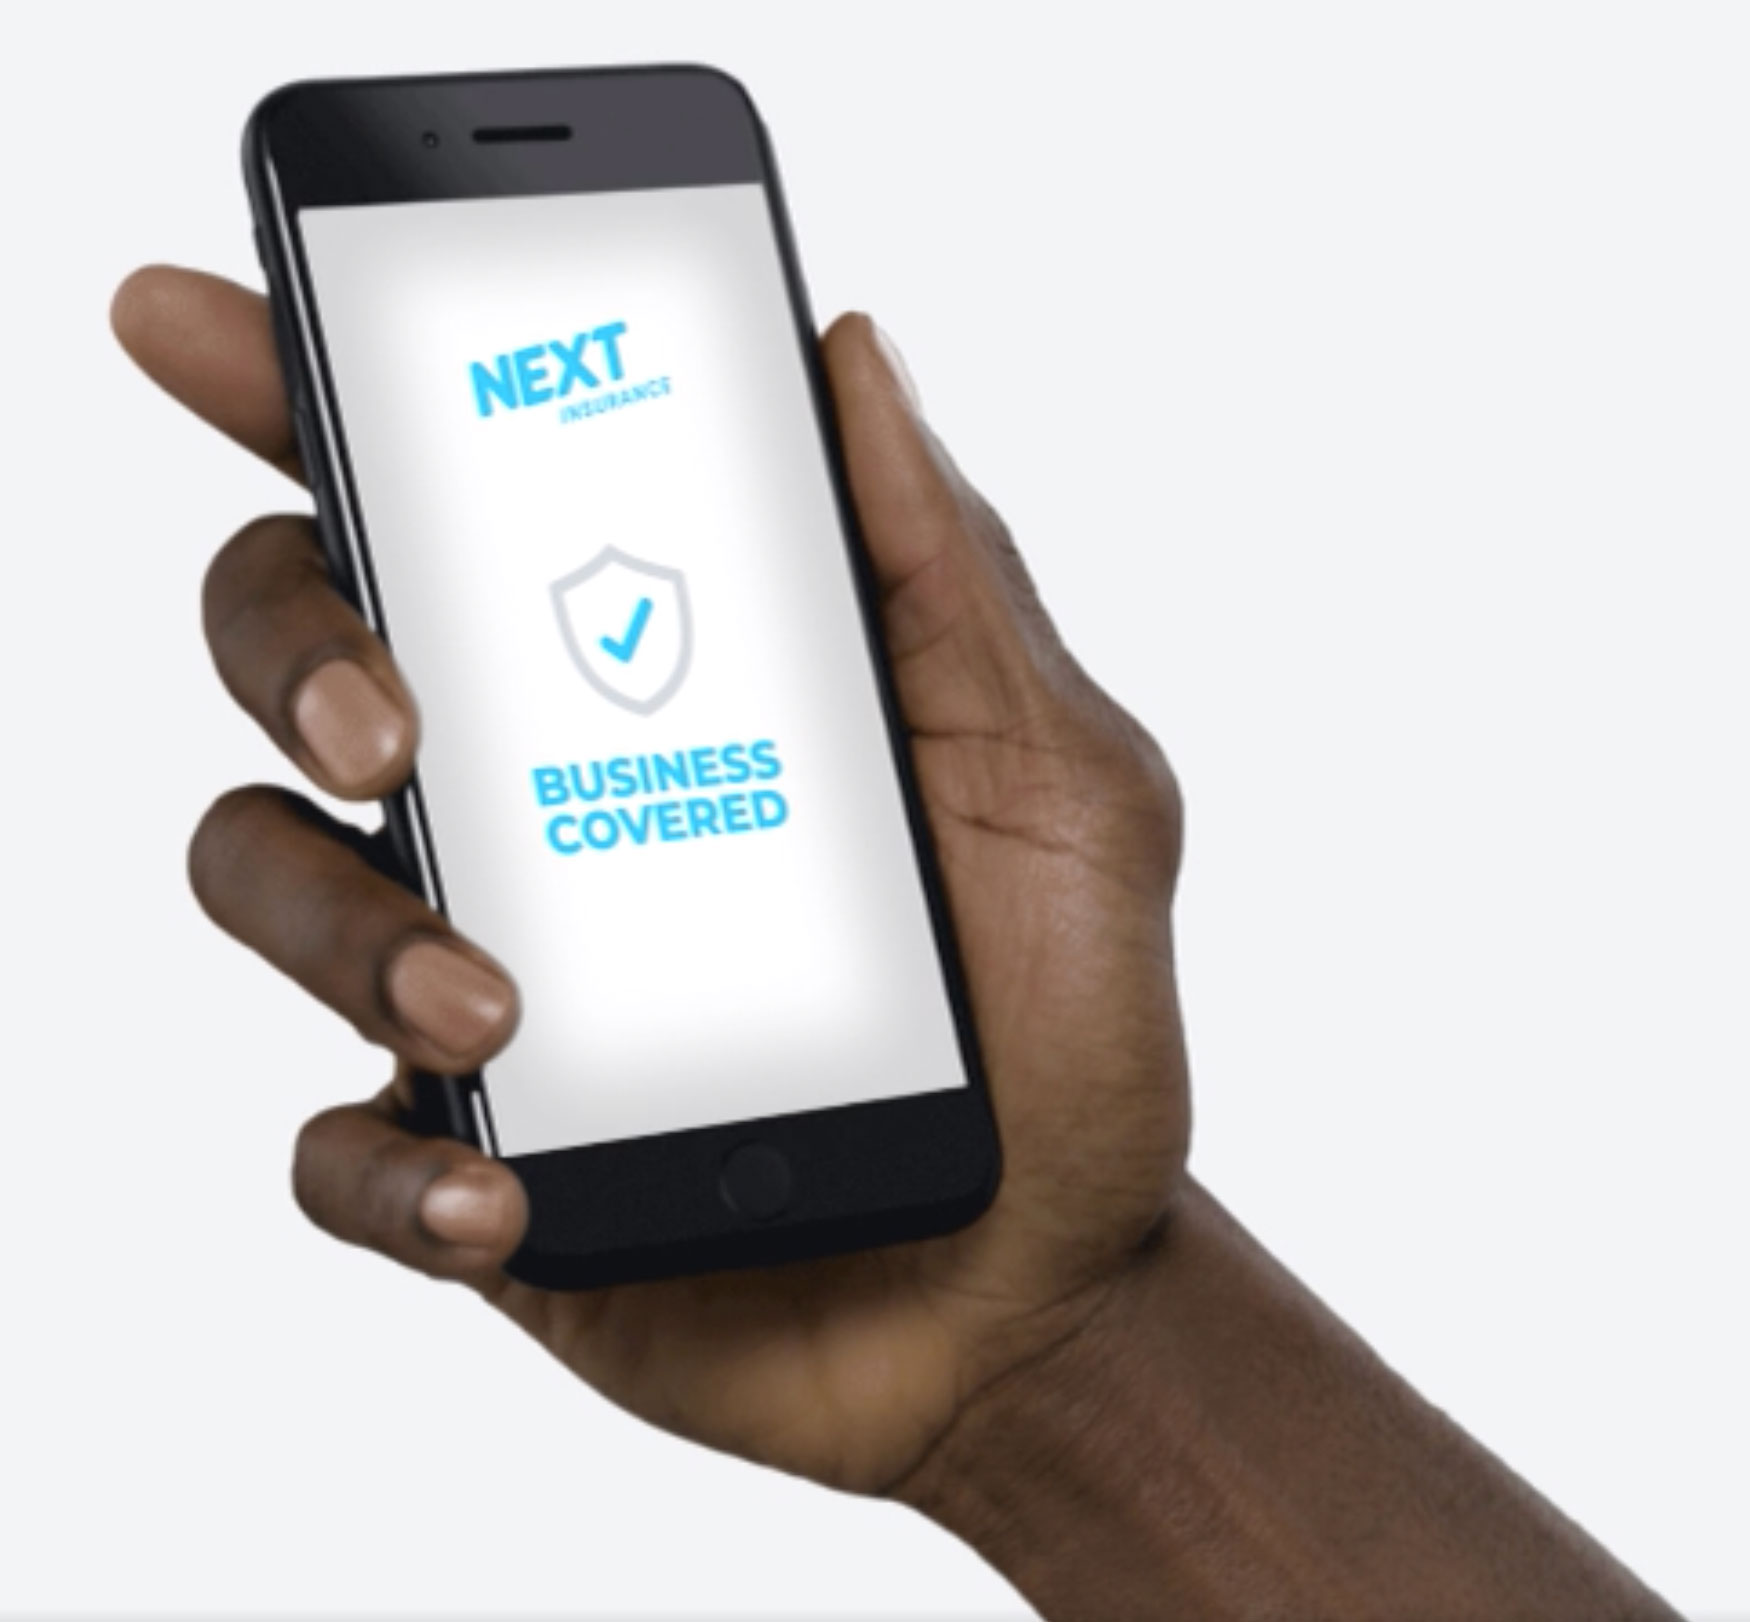 Best insurance apps and online services - Next Insurance